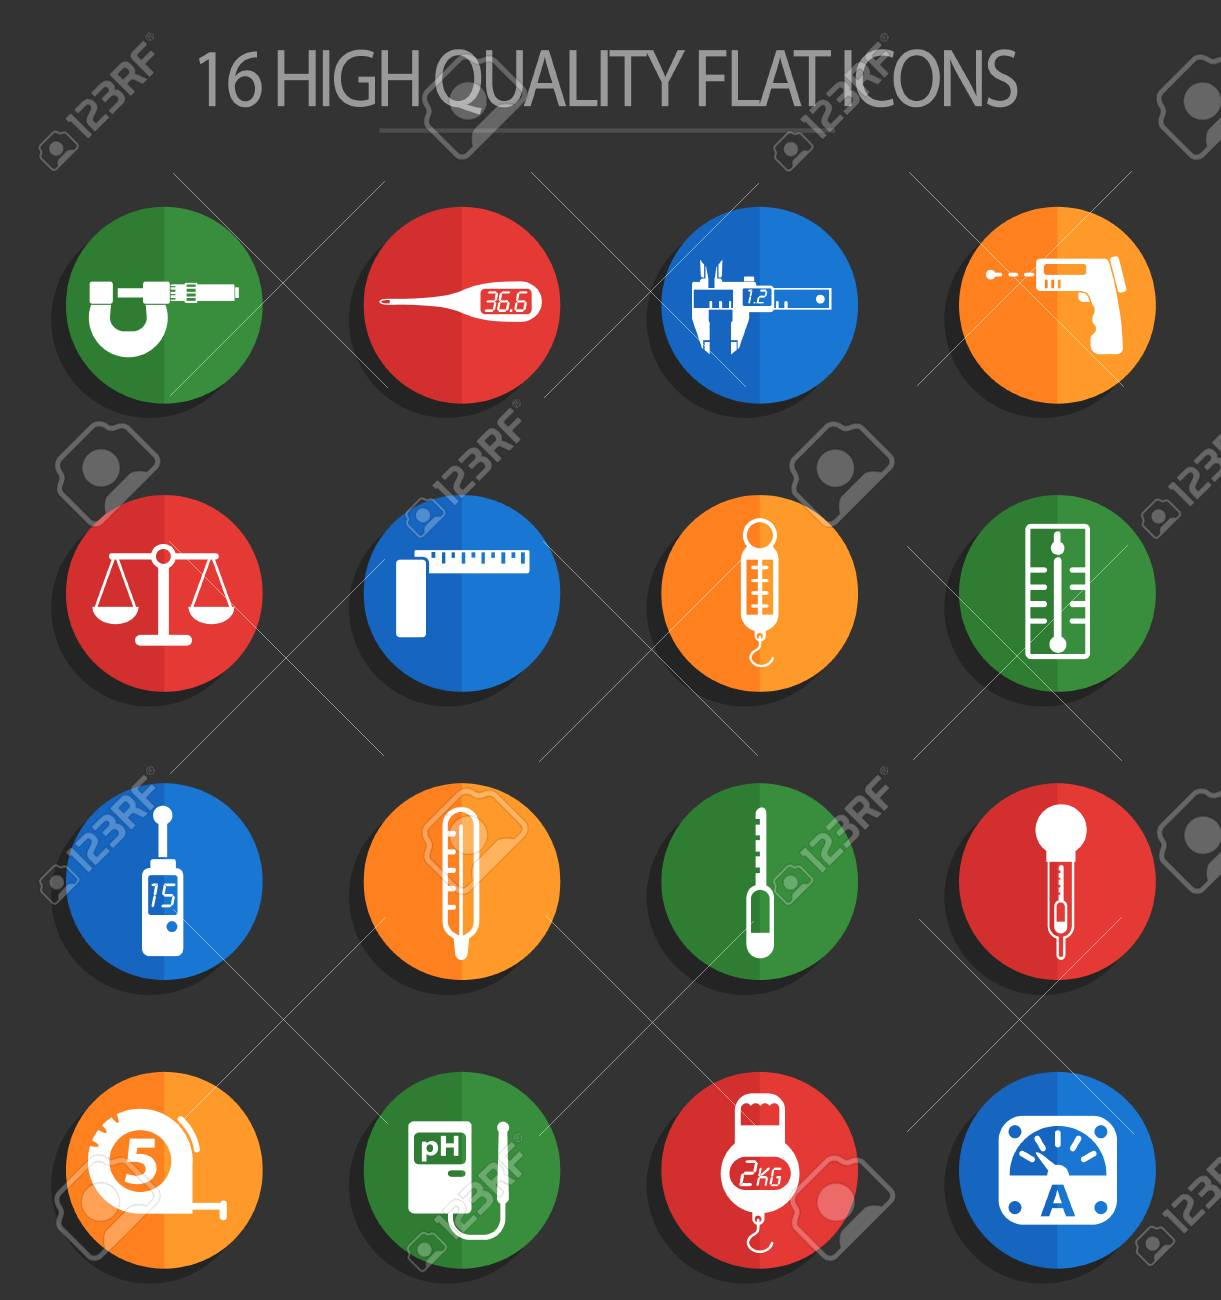 Measuring Tools Web Icons For User Interface Design Royalty Free Cliparts Vectors And Stock Illustration Image 112146342